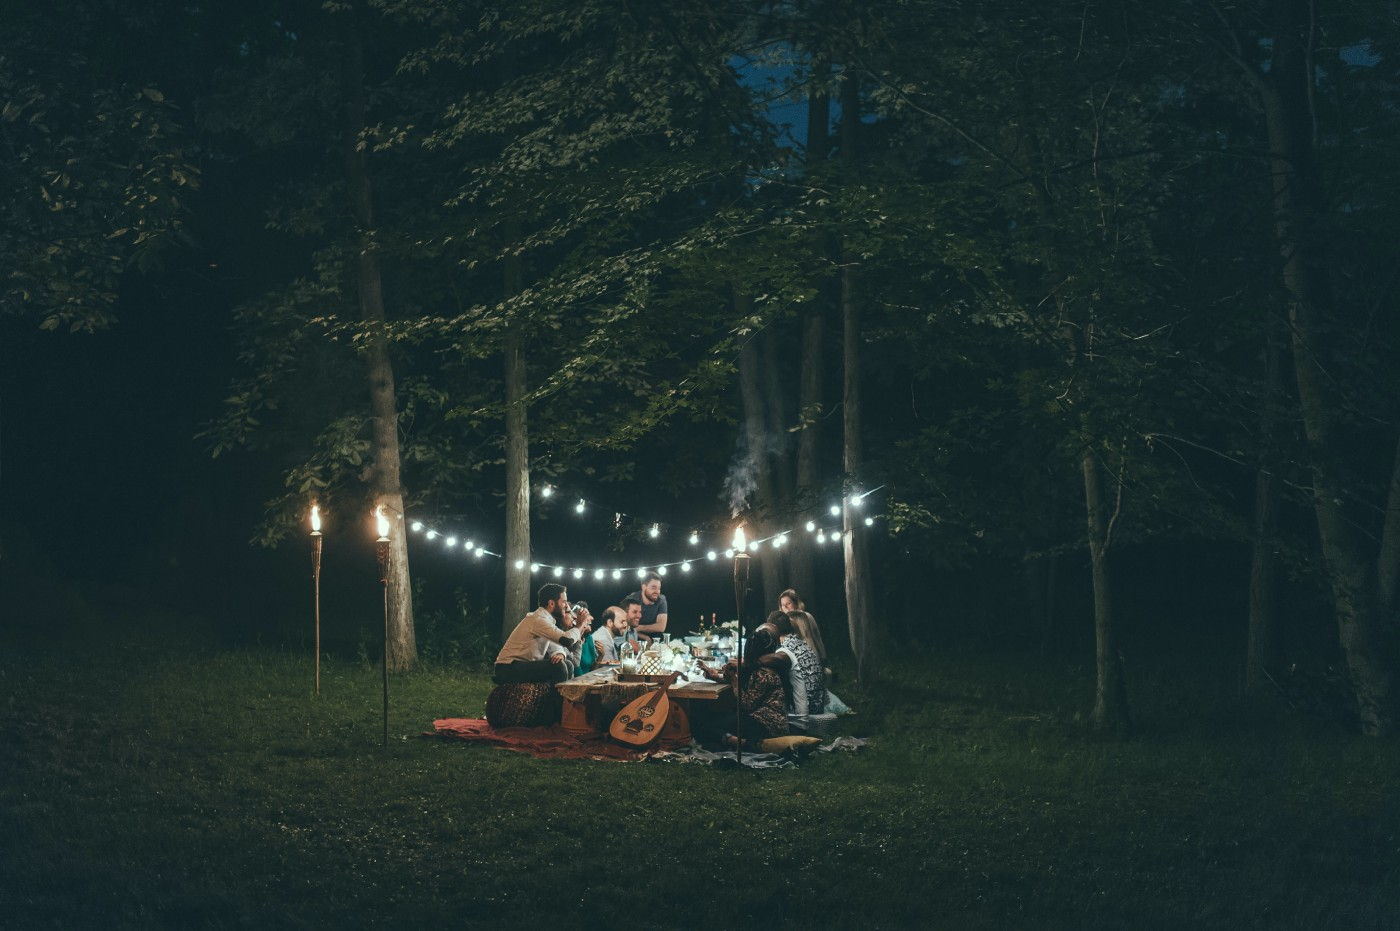 Friends at a forest dinner party with guitar, torches, lights strung between the trees.